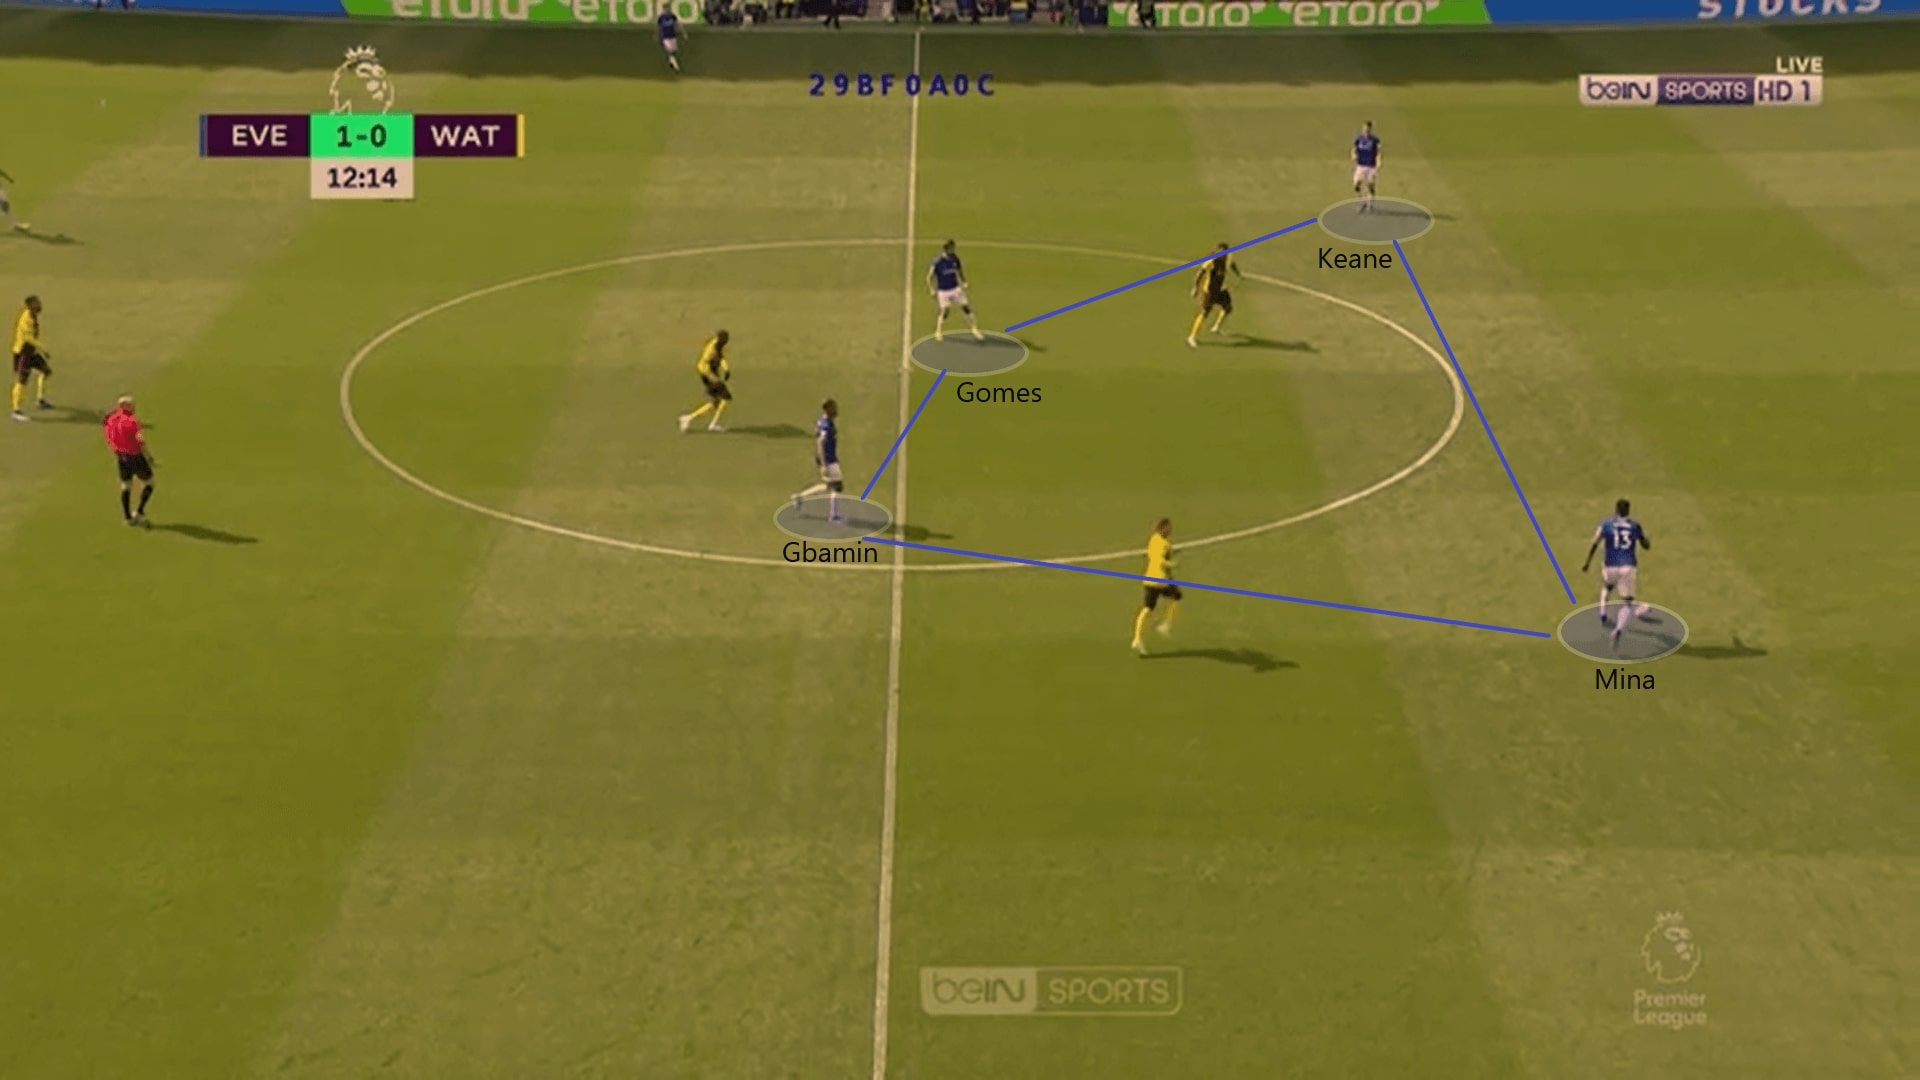 Everton 2019/20: August analysis - scout report - tactical analysis tactics